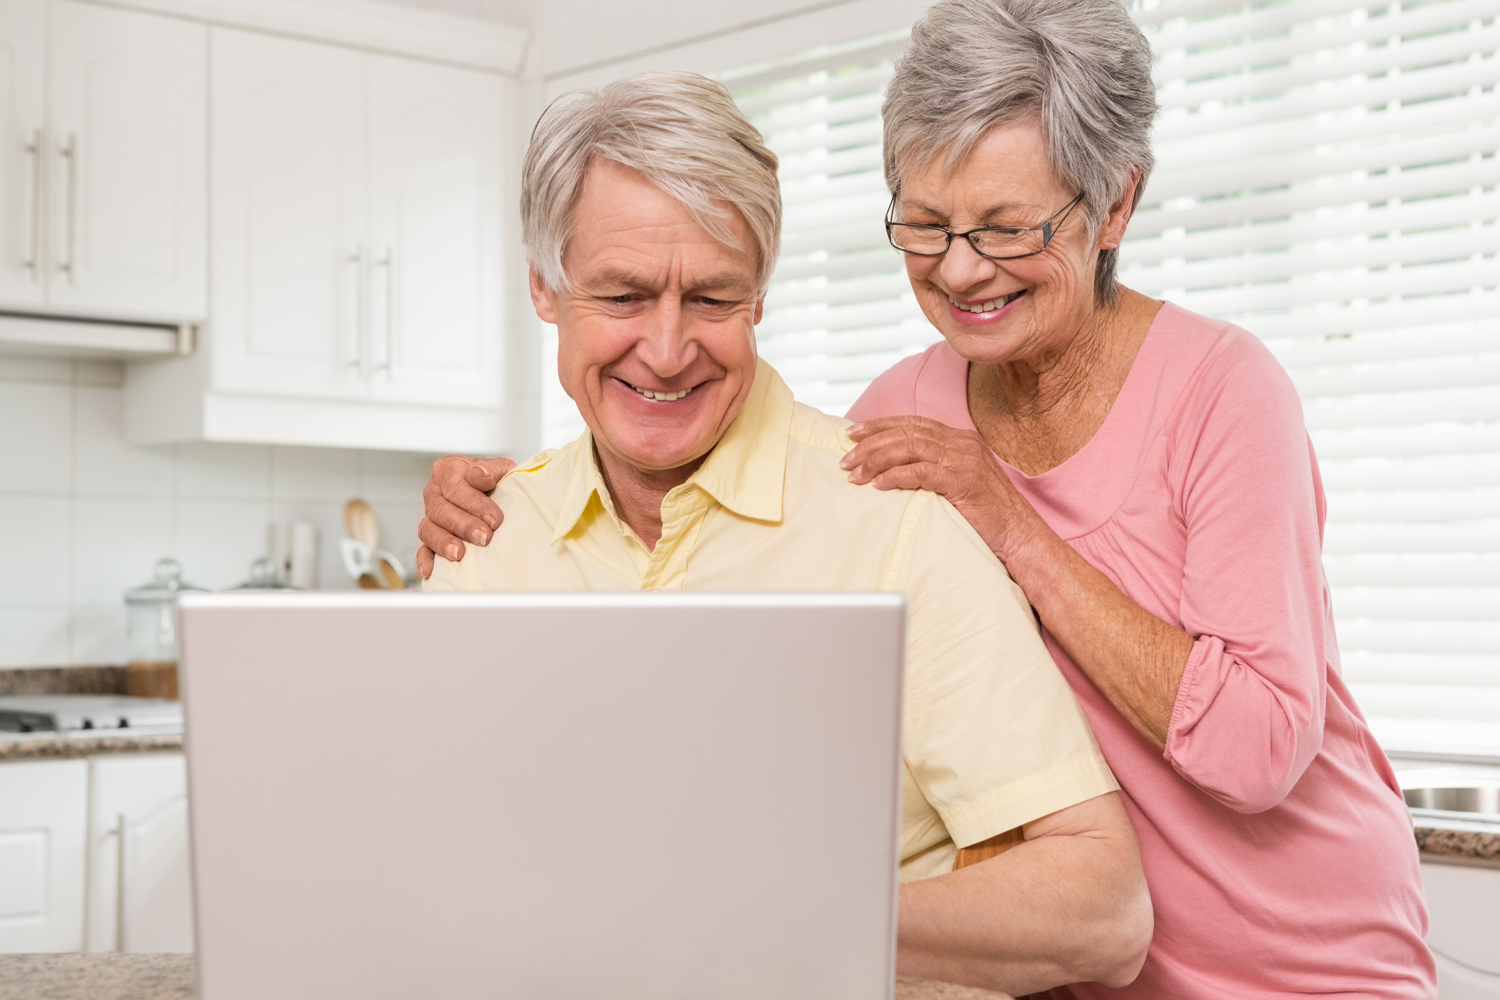 Mature-couple-in-the-kitchen-with-laptop-happy.jpg